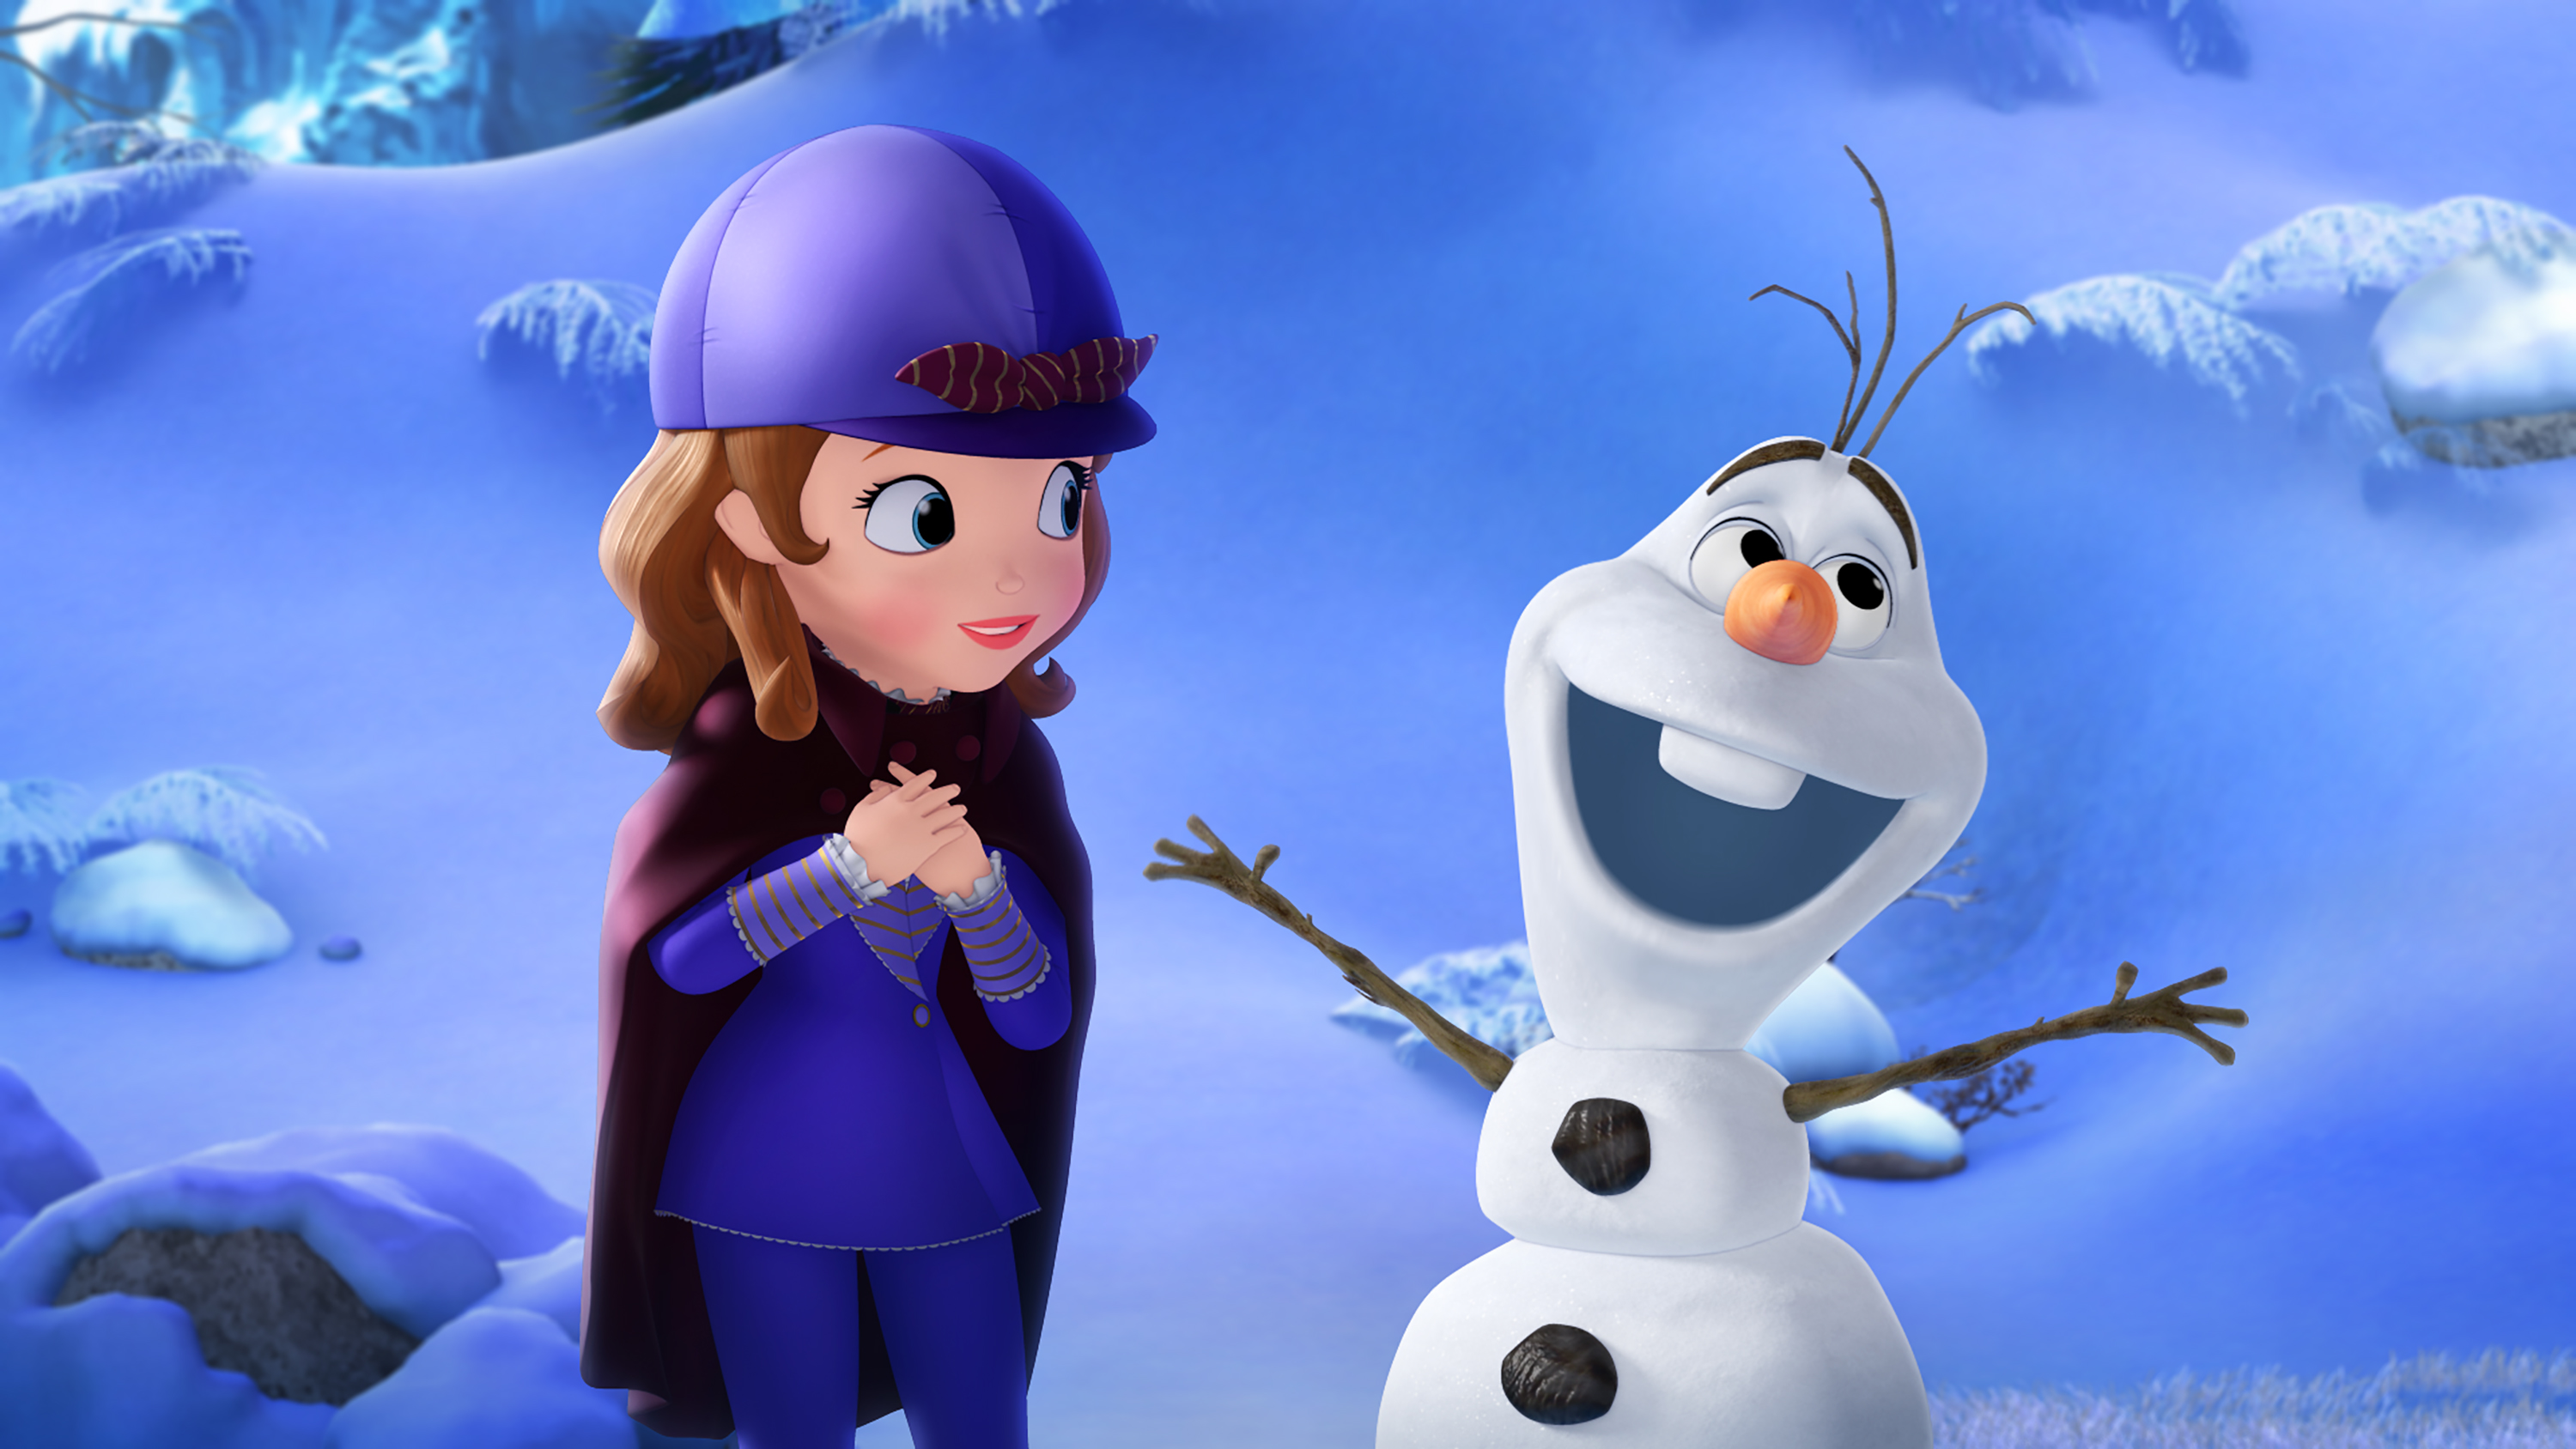 Sofia The First Olaf , HD Wallpaper & Backgrounds